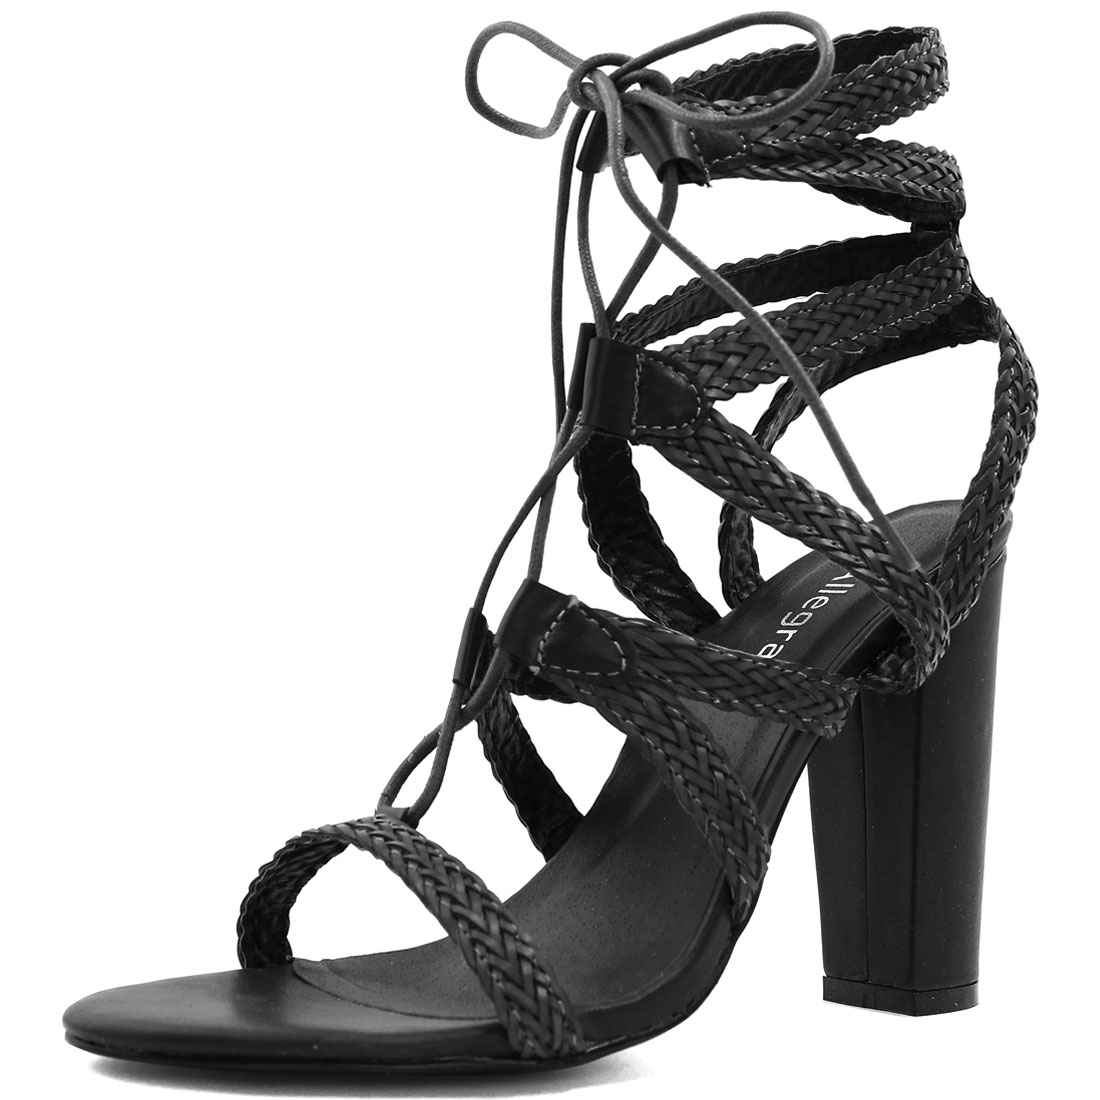 Woman Chunky Heel Braided Strappy Lace-Up Sandals Black US 10.5